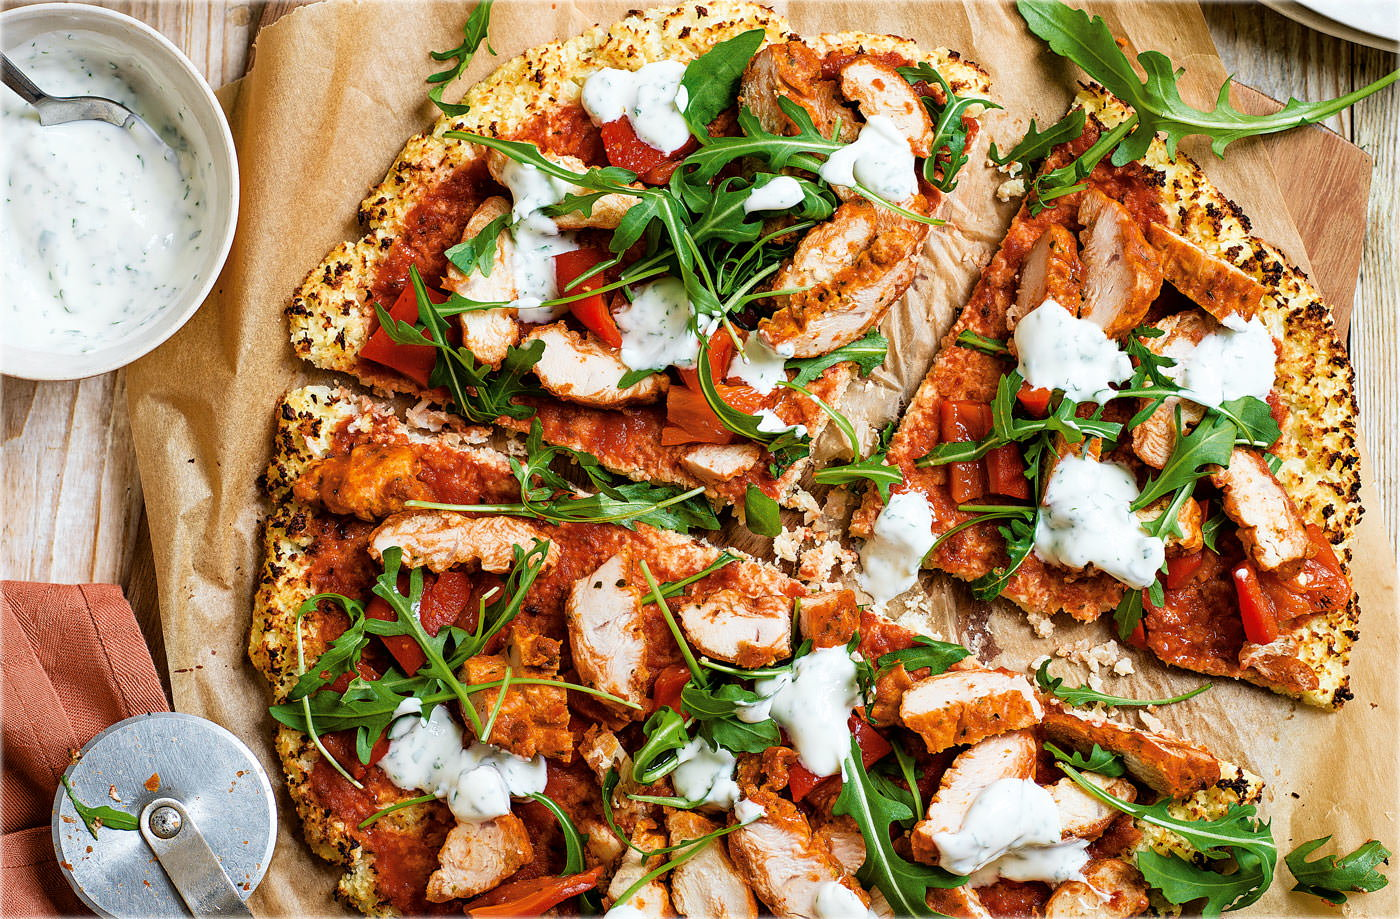 Spicy chicken cauliflower 'pizza'